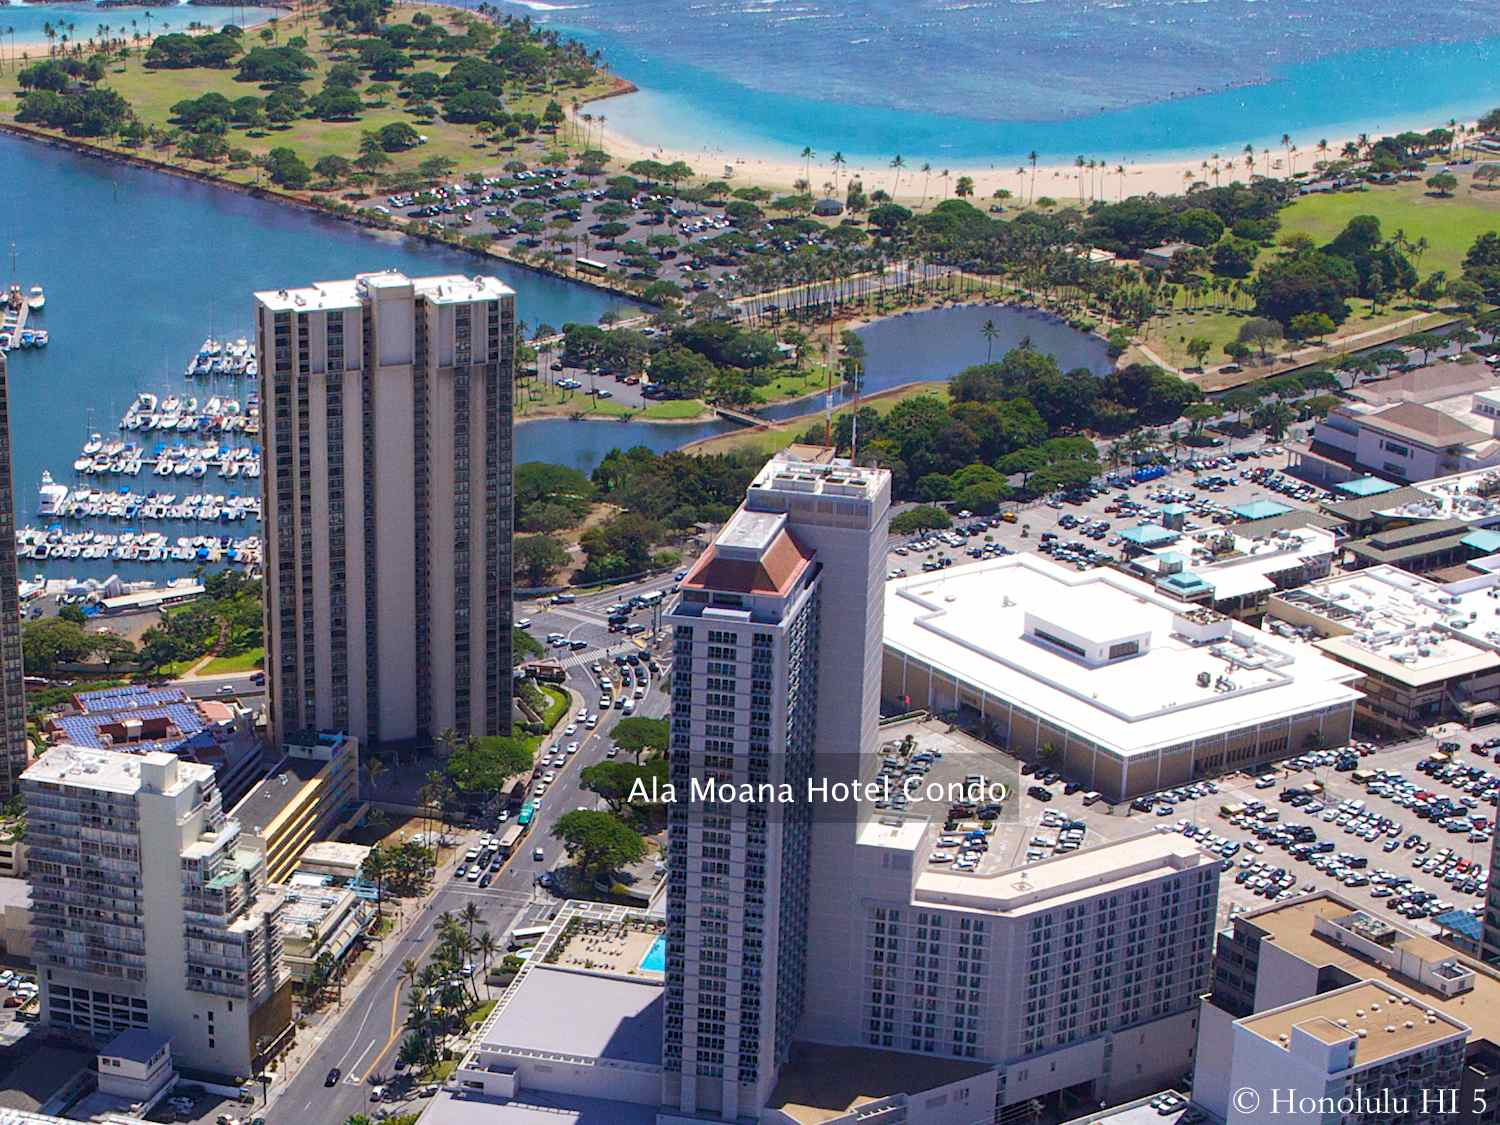 Ala Moana Hotel Condo Aerial Photo with Ocean in Background